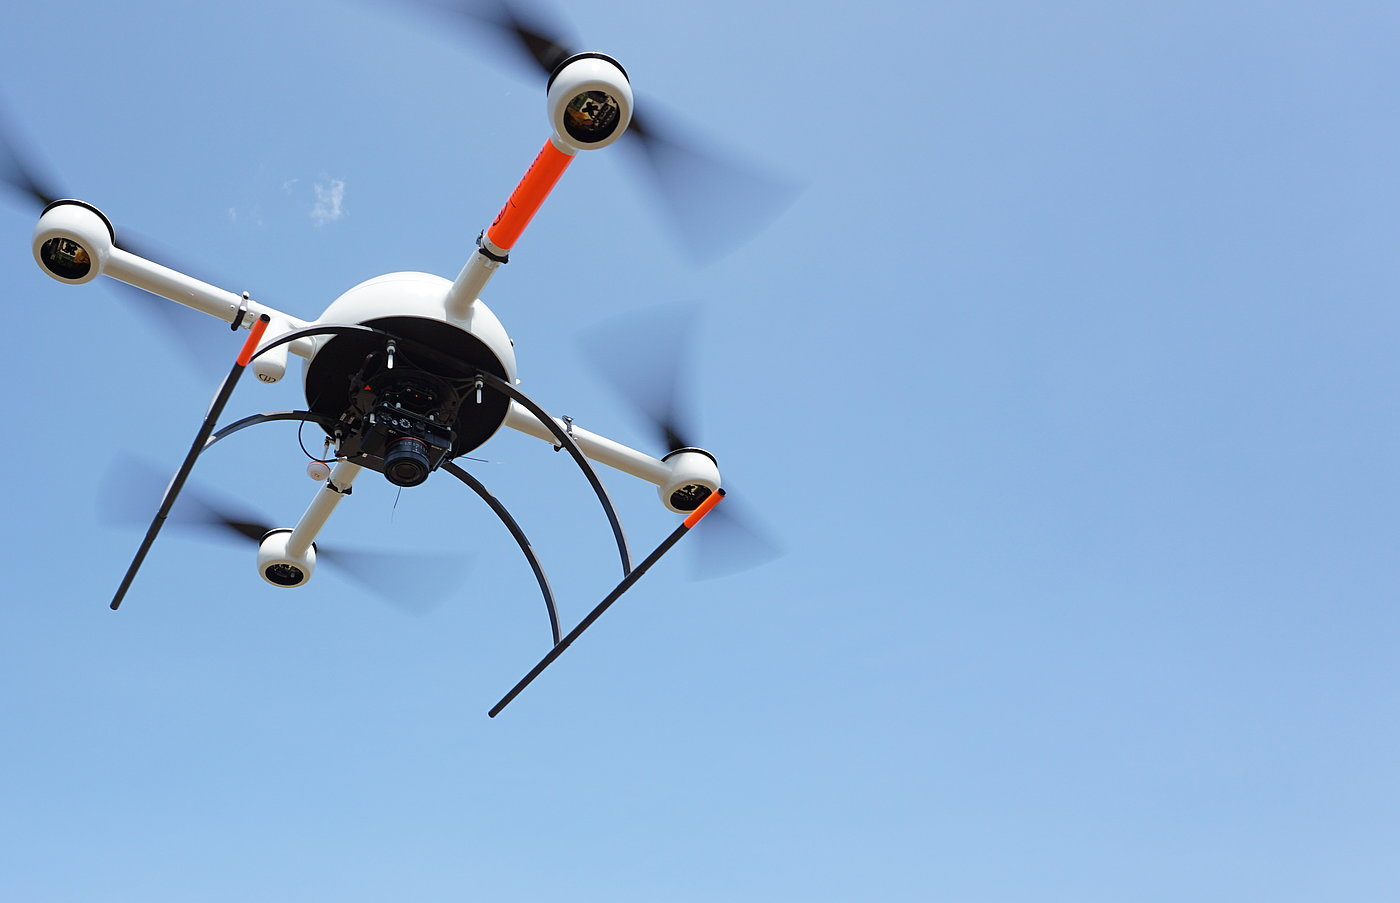 Microdrones md4-1000 UAV with mdMapper payload in flight.